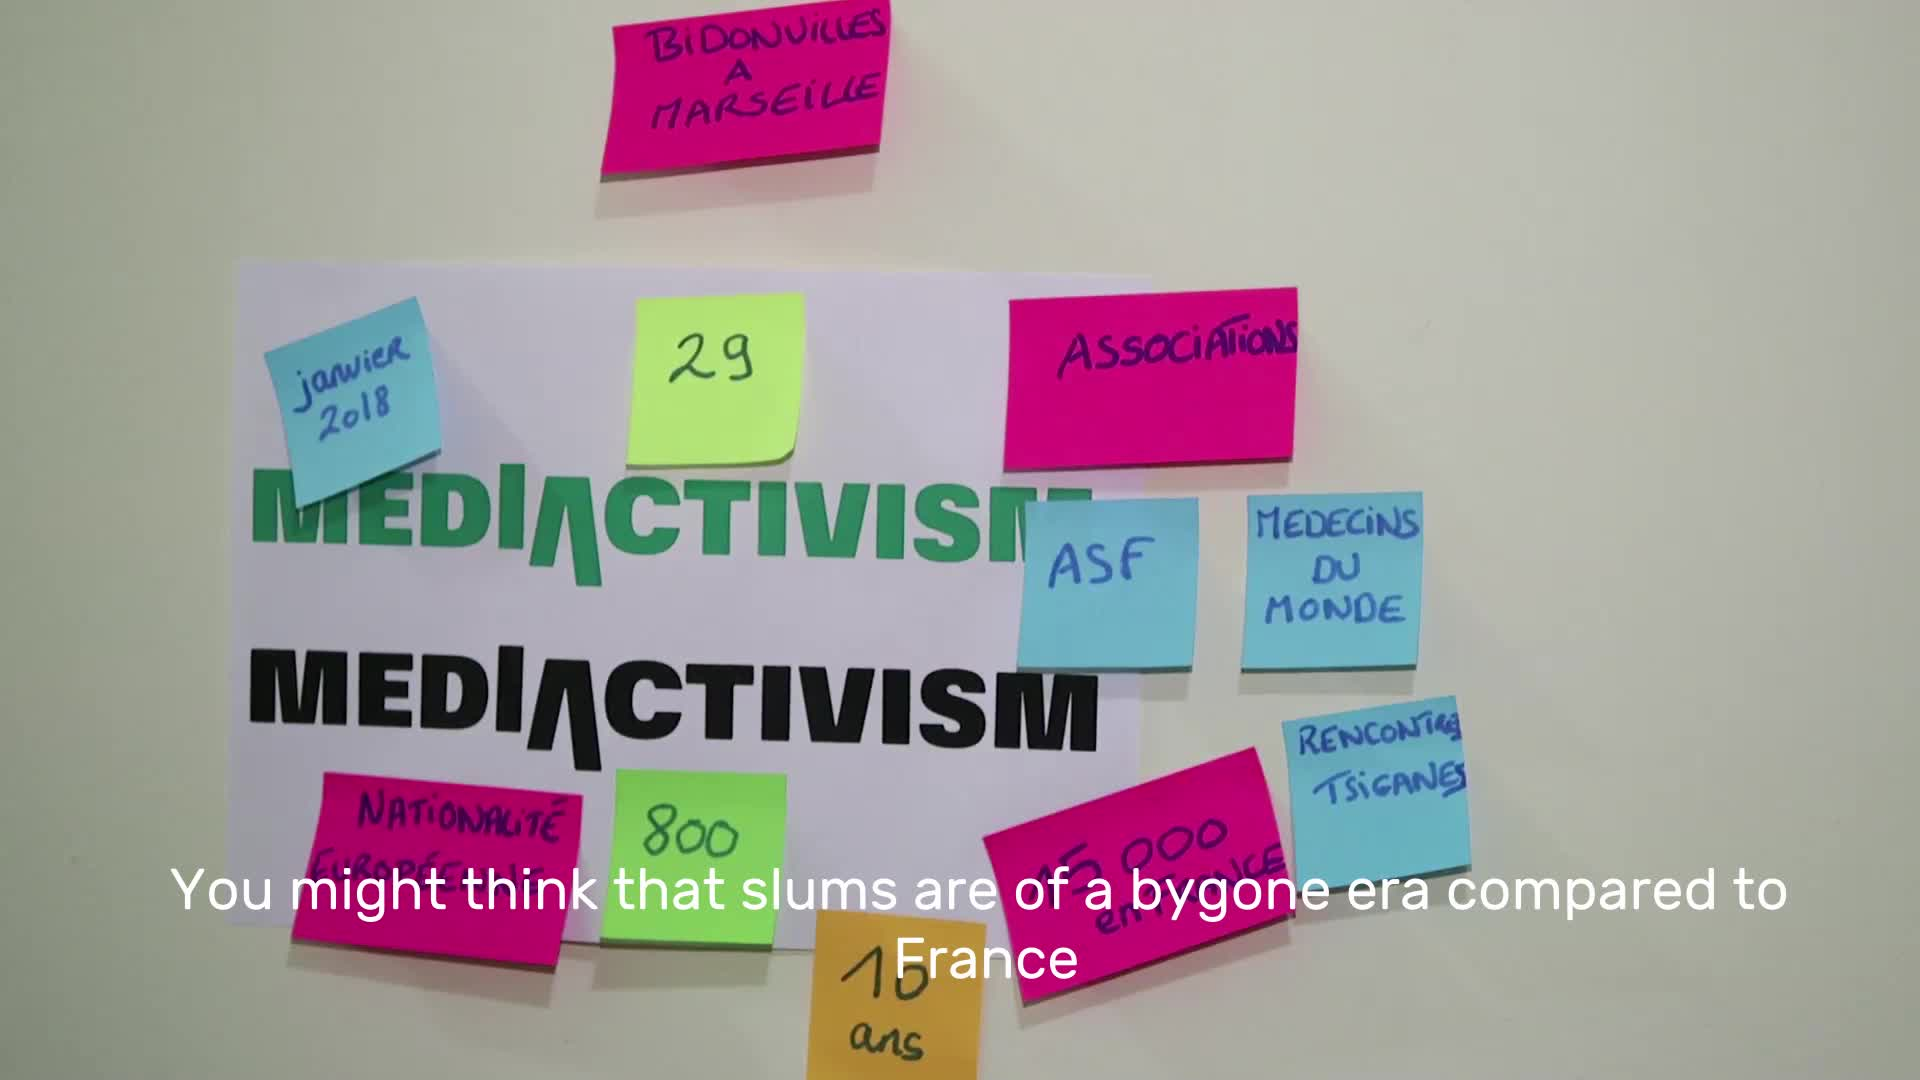 Mediactivism hackcamp in Marseille: Interview with Faustine Vieillot